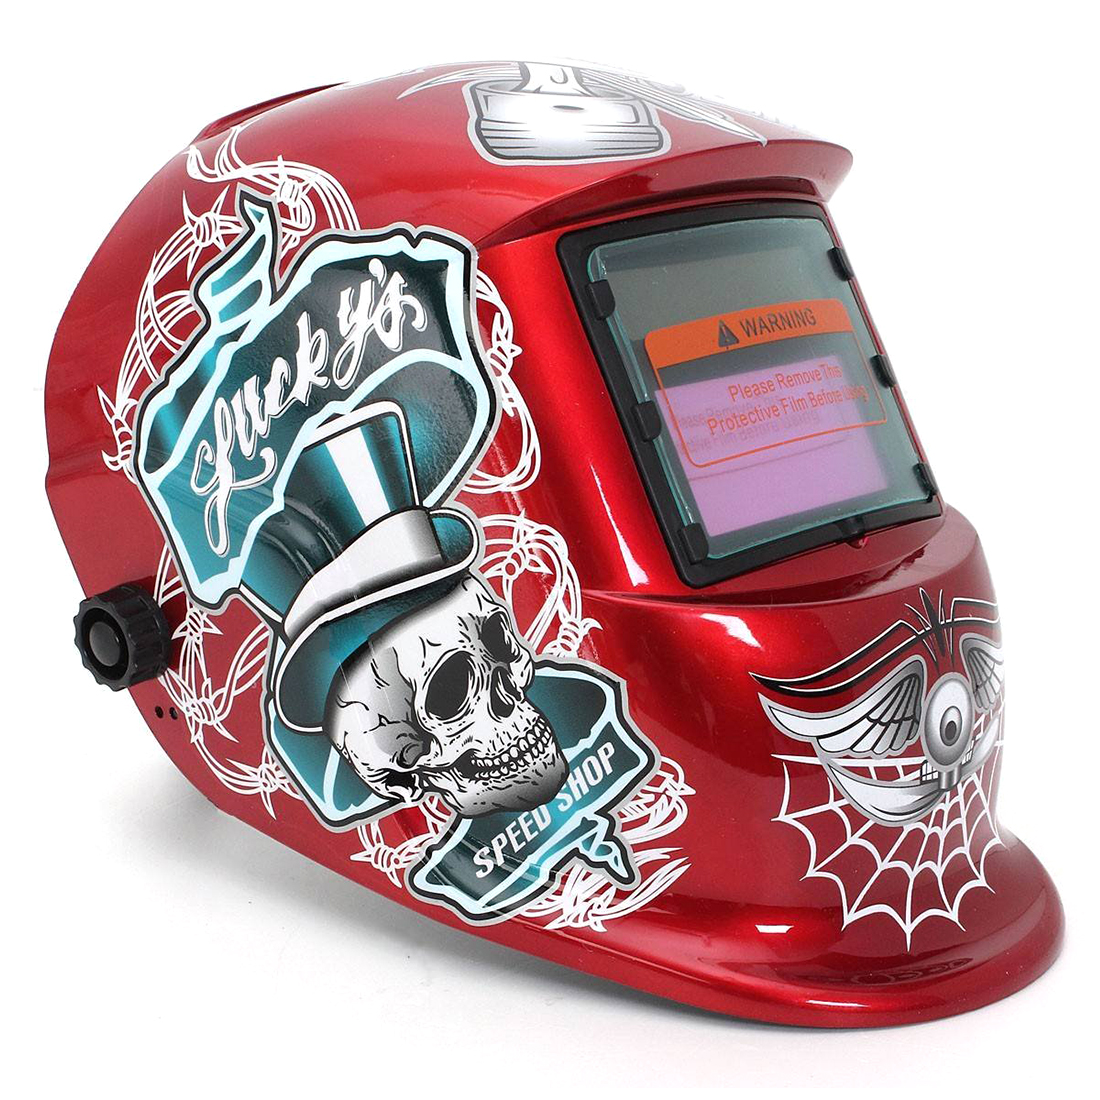 Welding Mask Helmet Solar Automatic Welding (Use Solar Energy for Refill) Red Skull and Spider web Protective AccessoryWelding Mask Helmet Solar Automatic Welding (Use Solar Energy for Refill) Red Skull and Spider web Protective Accessory